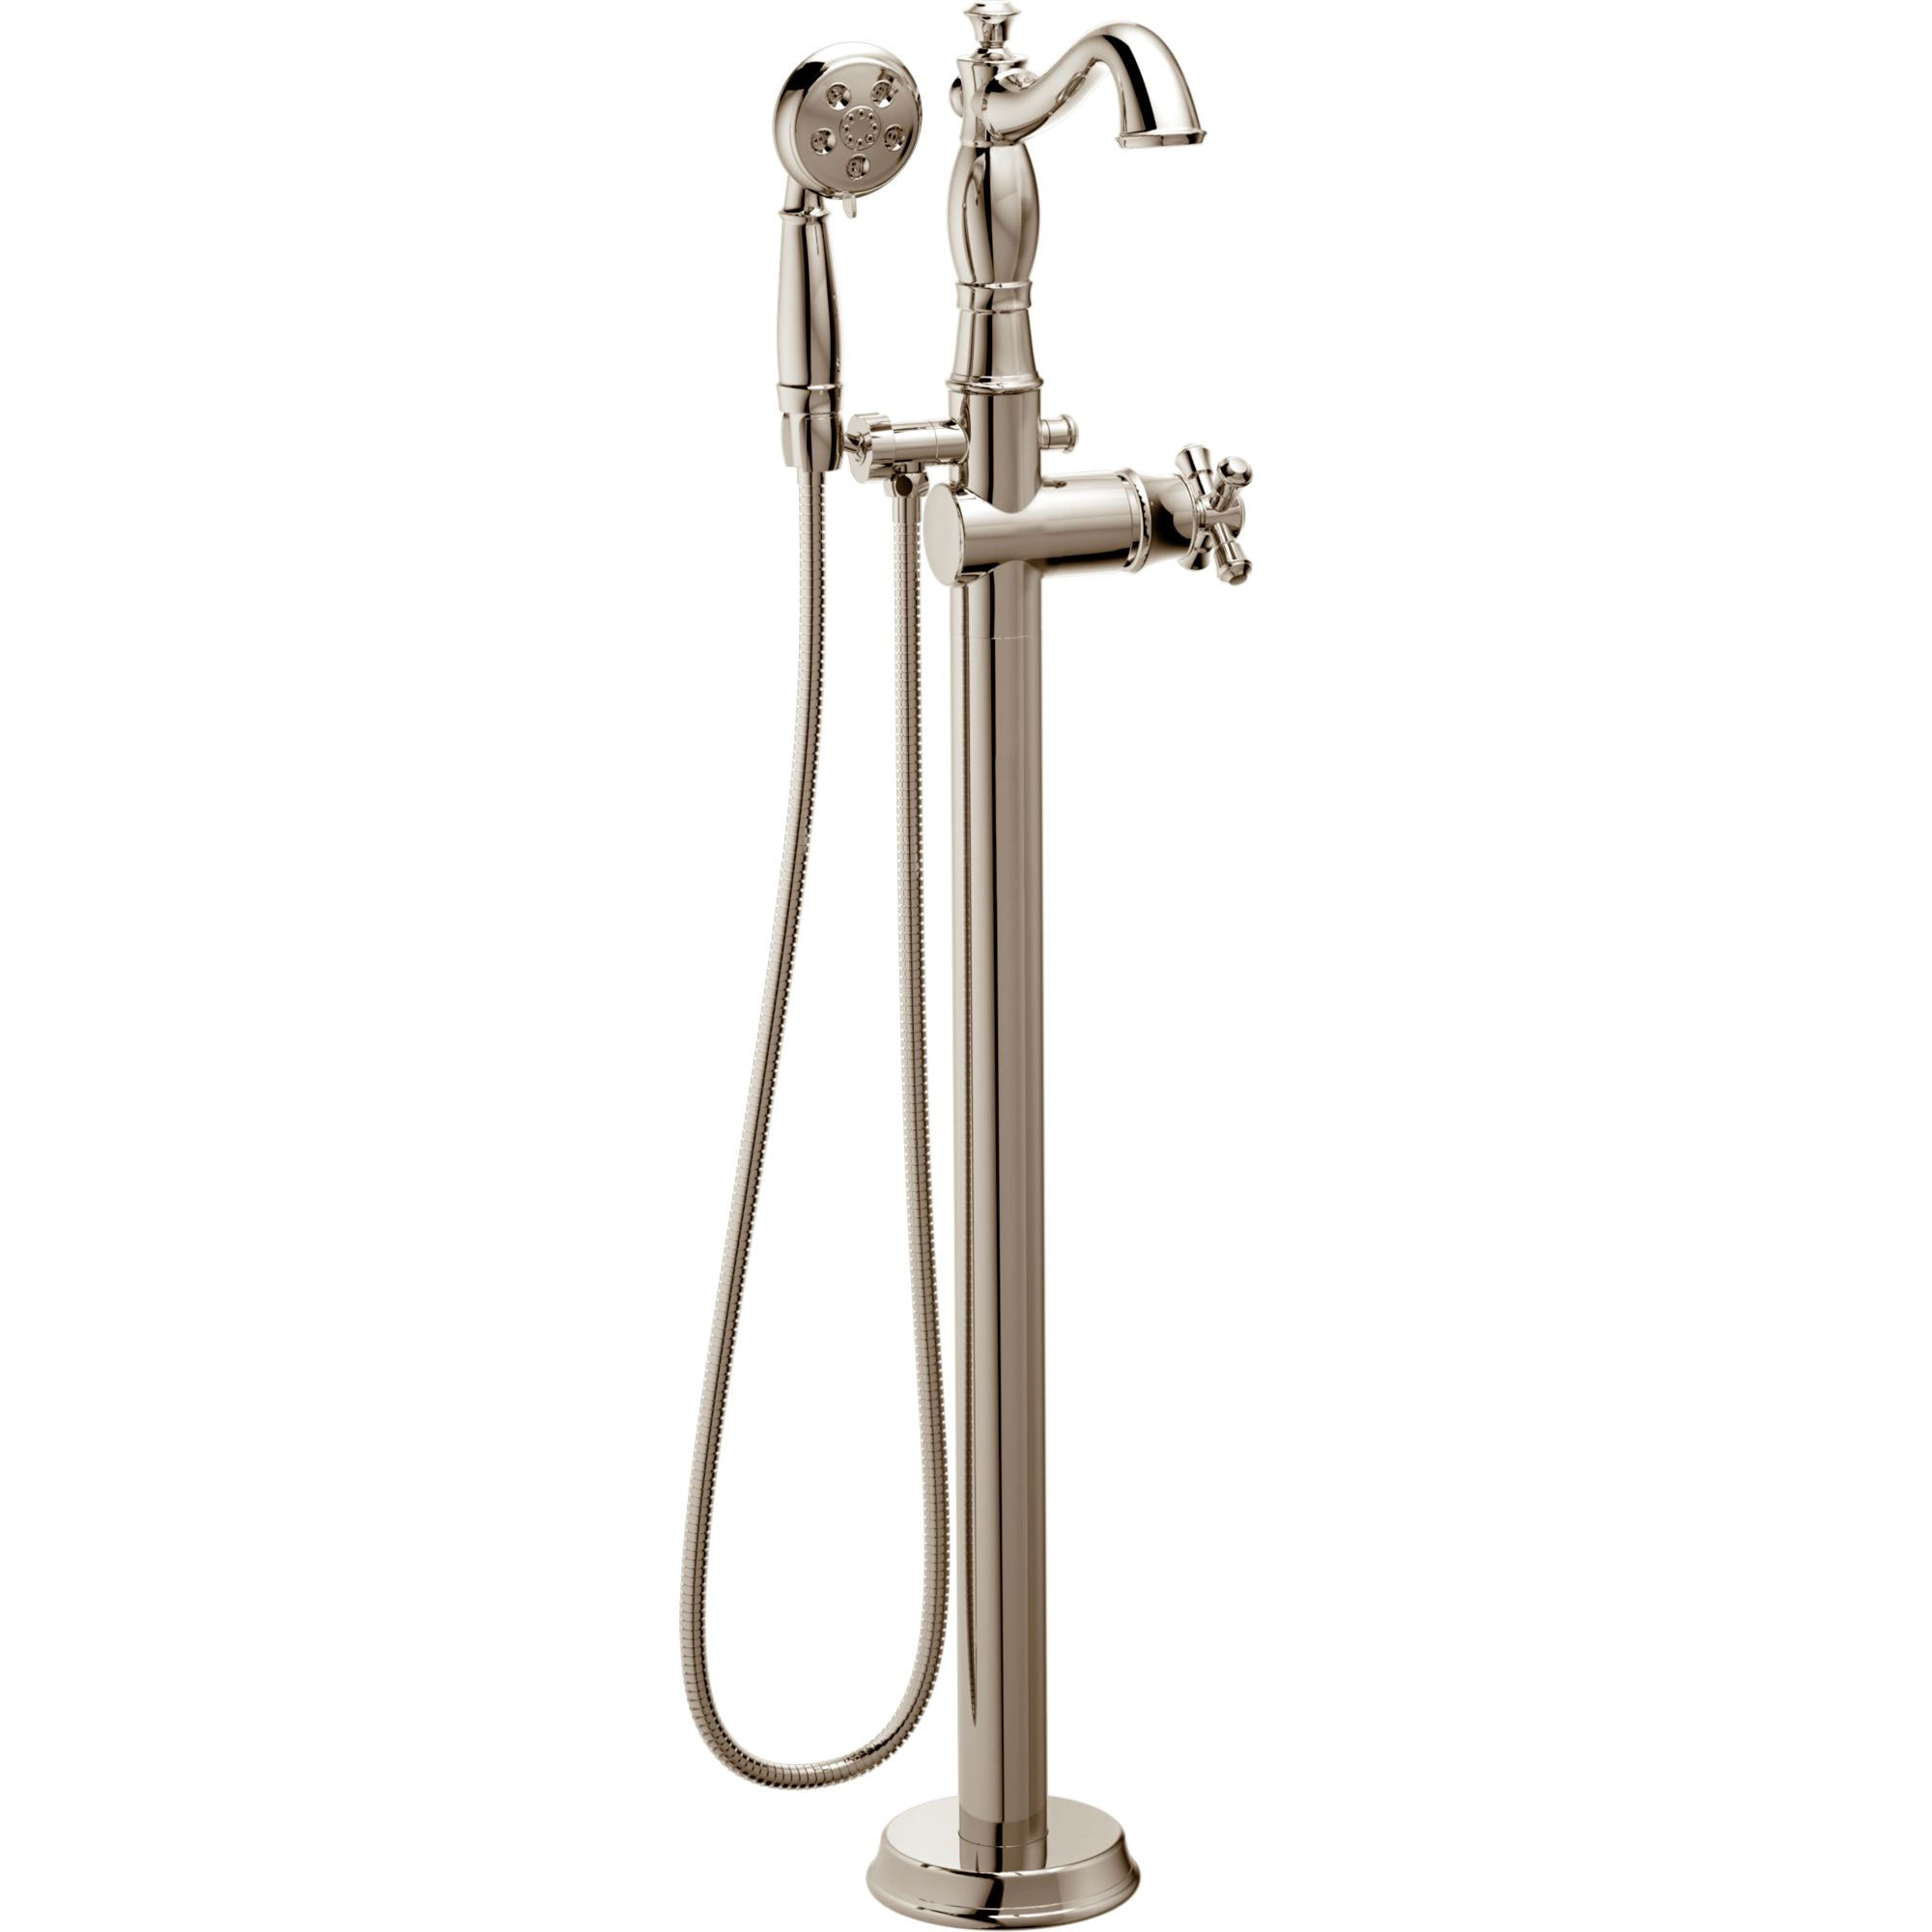 Delta Traditional Polished Nickel Floor Mount Tub Filler Faucet with Hand Shower Spray INCLUDES Valve and Metal Cross Handle D1062V